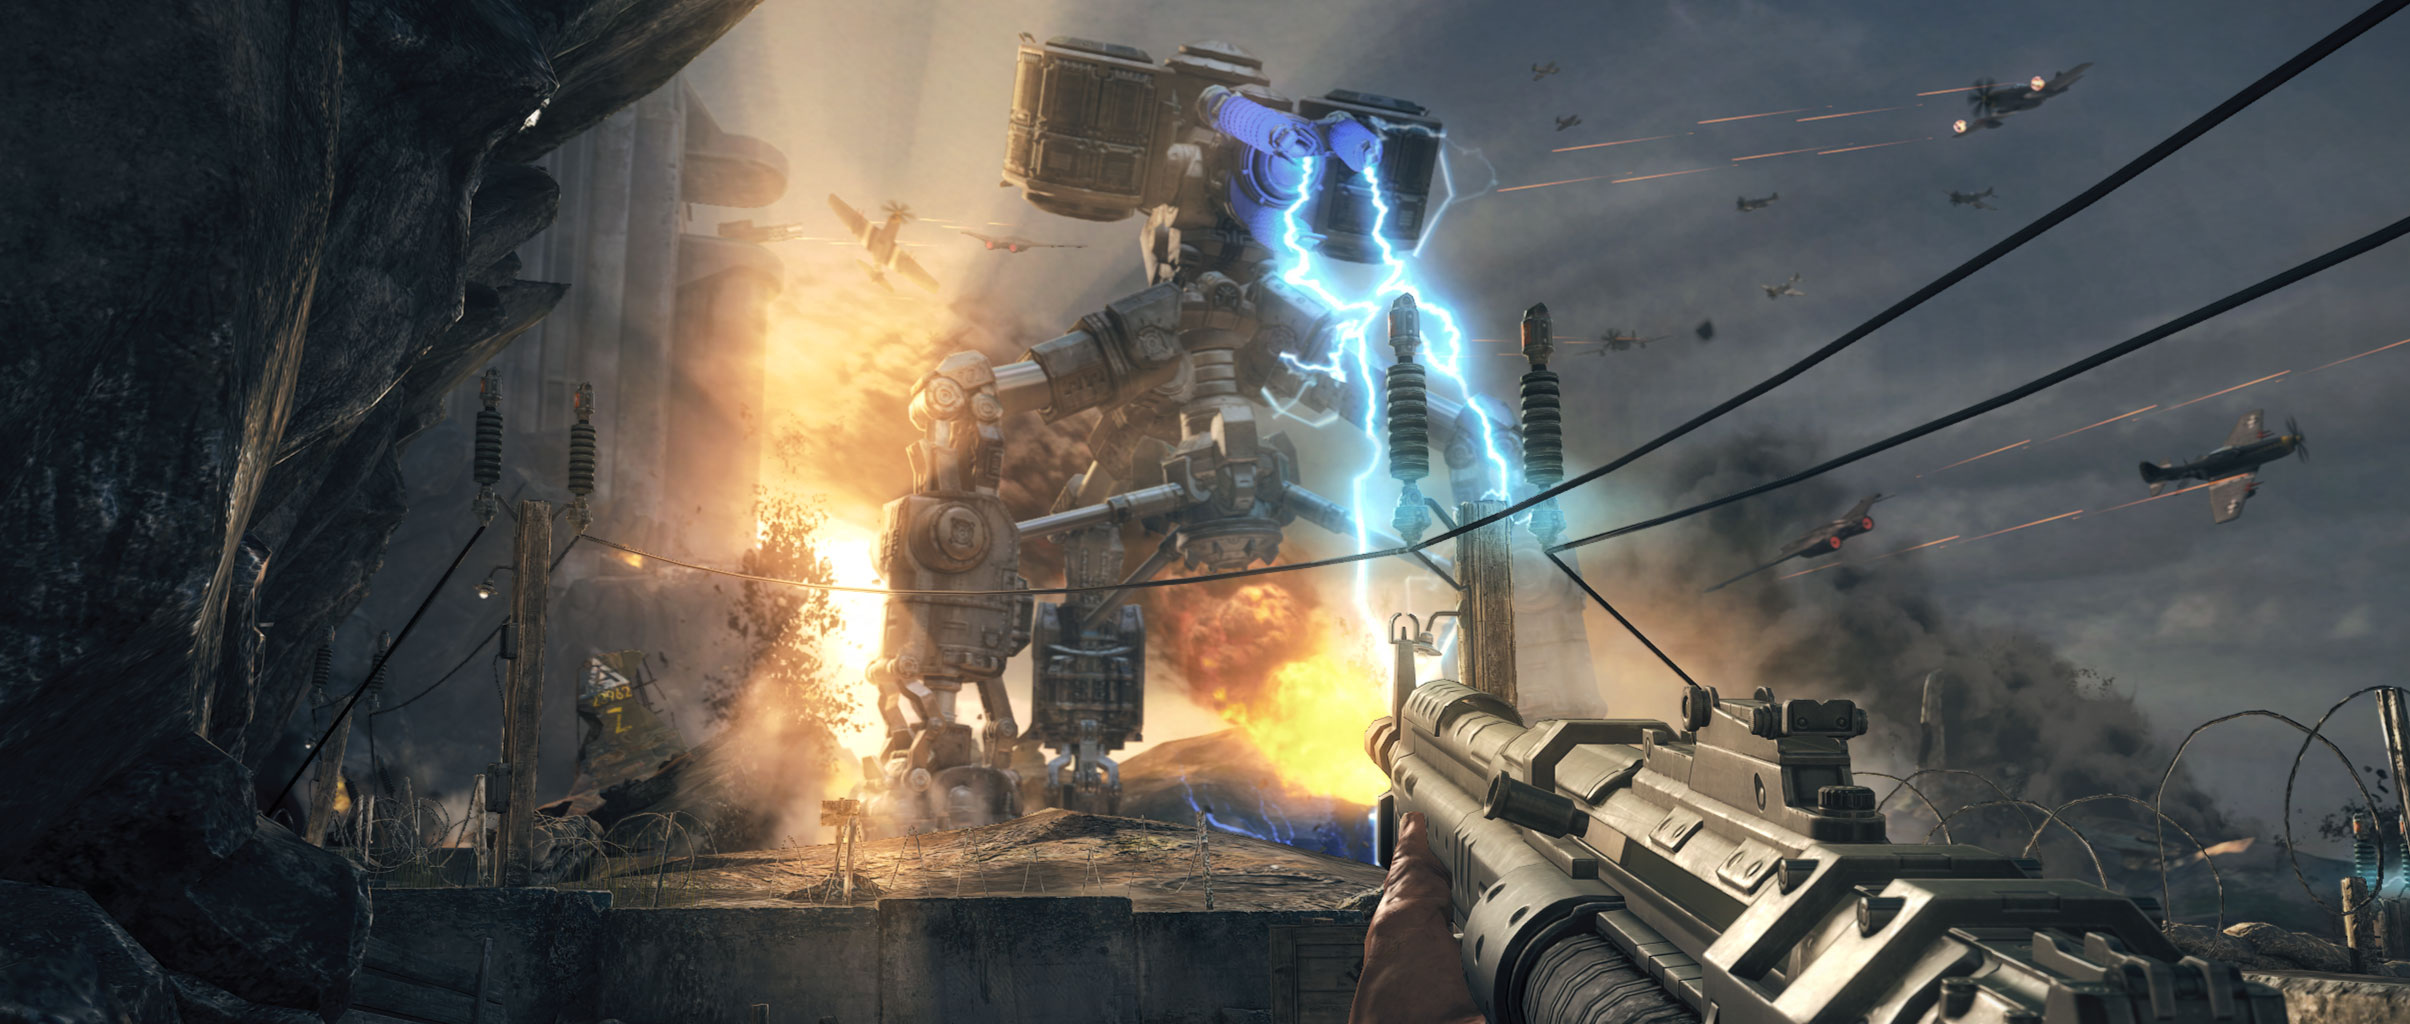 Wolfenstein: The New Order Doesn't Have Multiplayer Because It Would